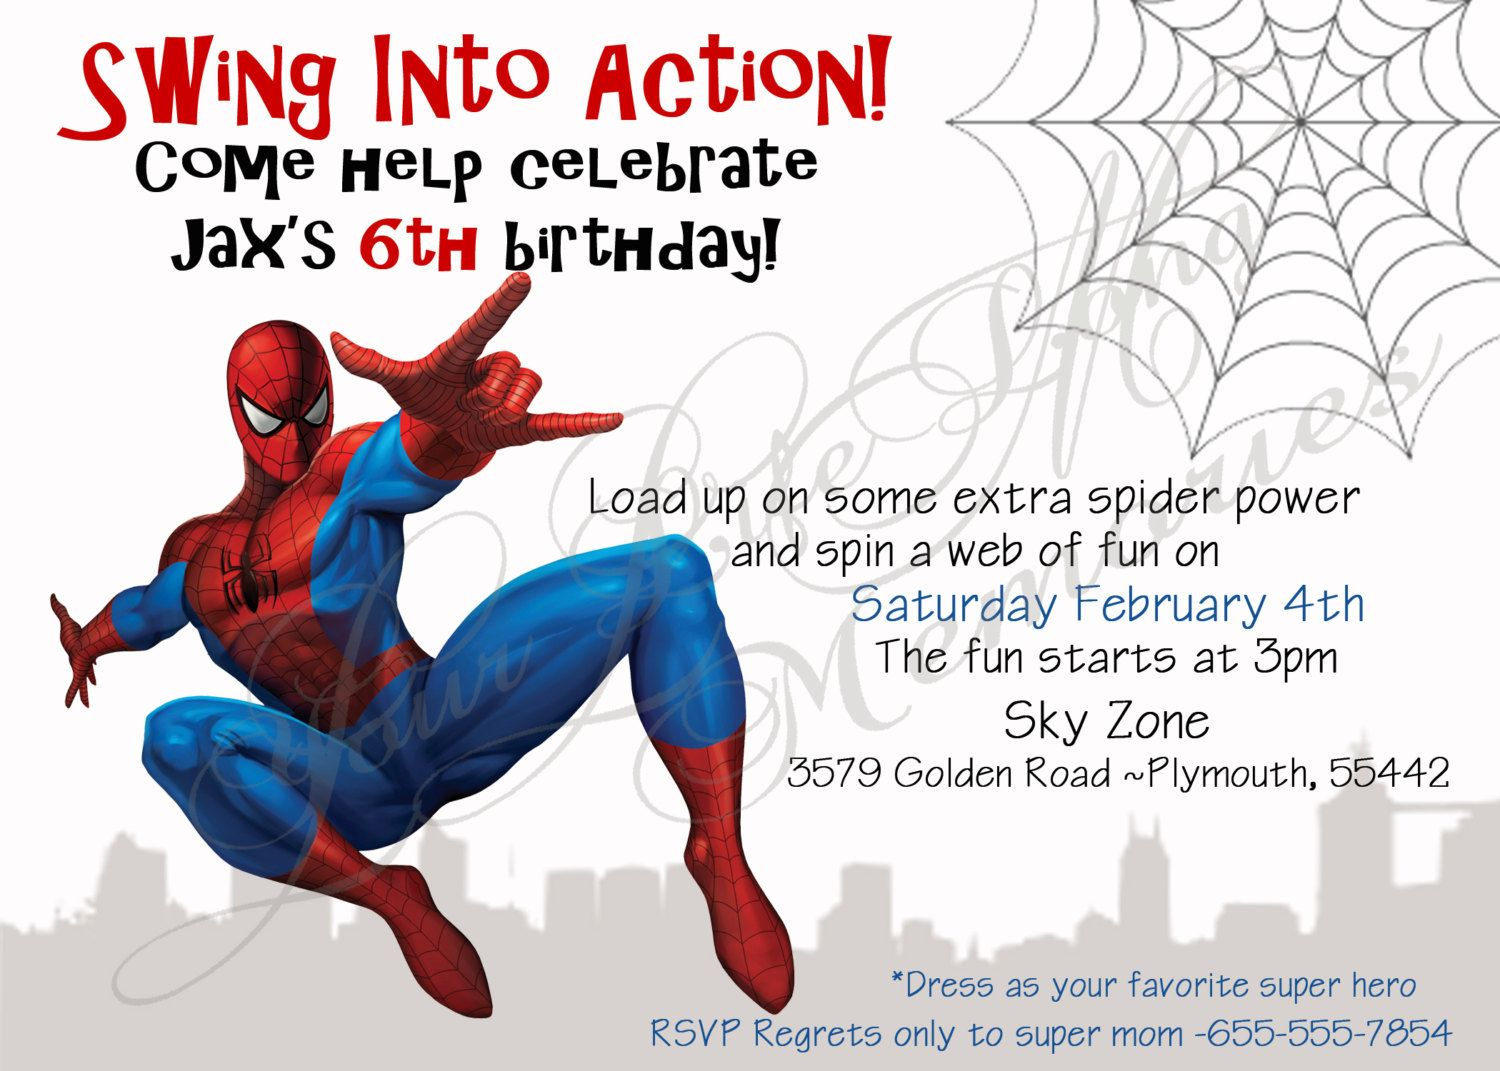 image regarding Printable Spiderman Invitations named Spiderman Birthday Invites Cost-free Printable Spiderman